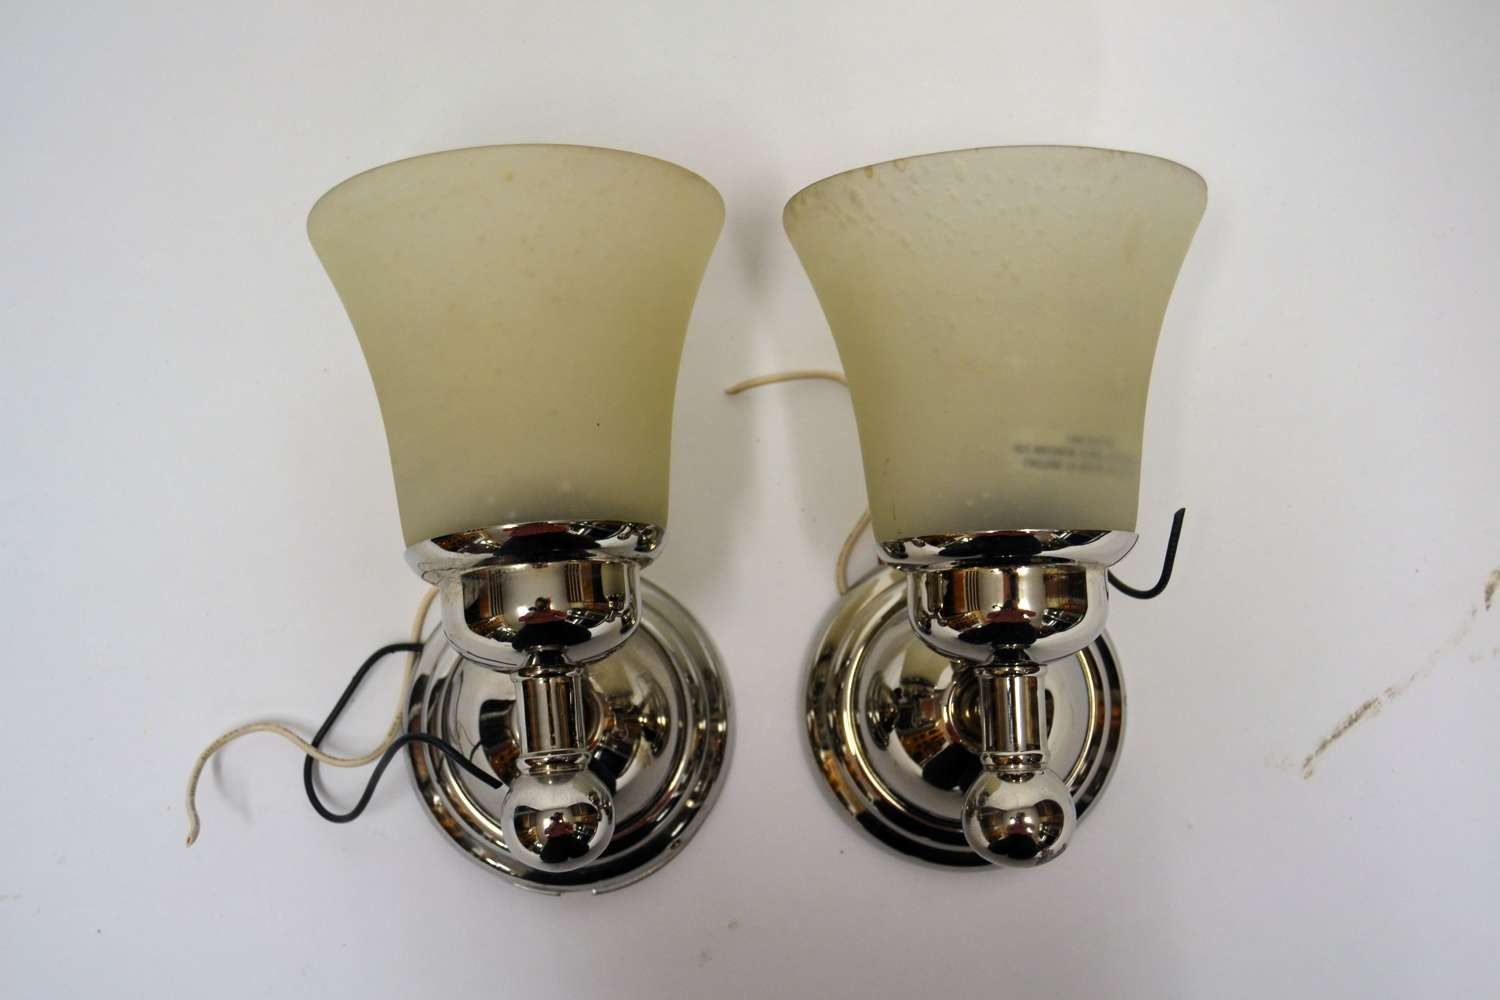 Retro American 1960s Glass Lights